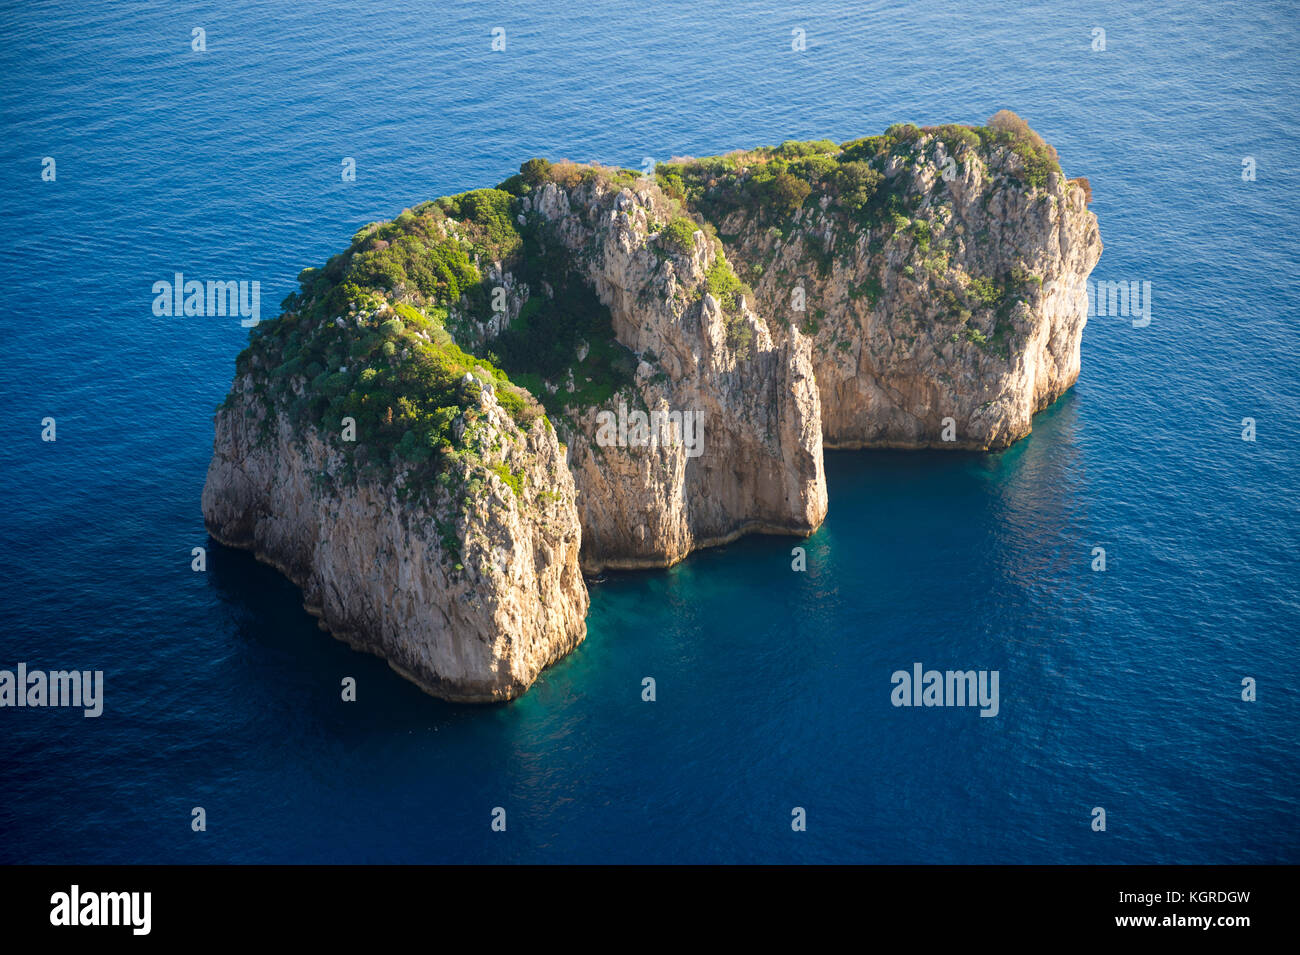 Dramatic overhead view of the iconic Faraglioni rocks, just off the shore of the island of Capri, Italy - Stock Image